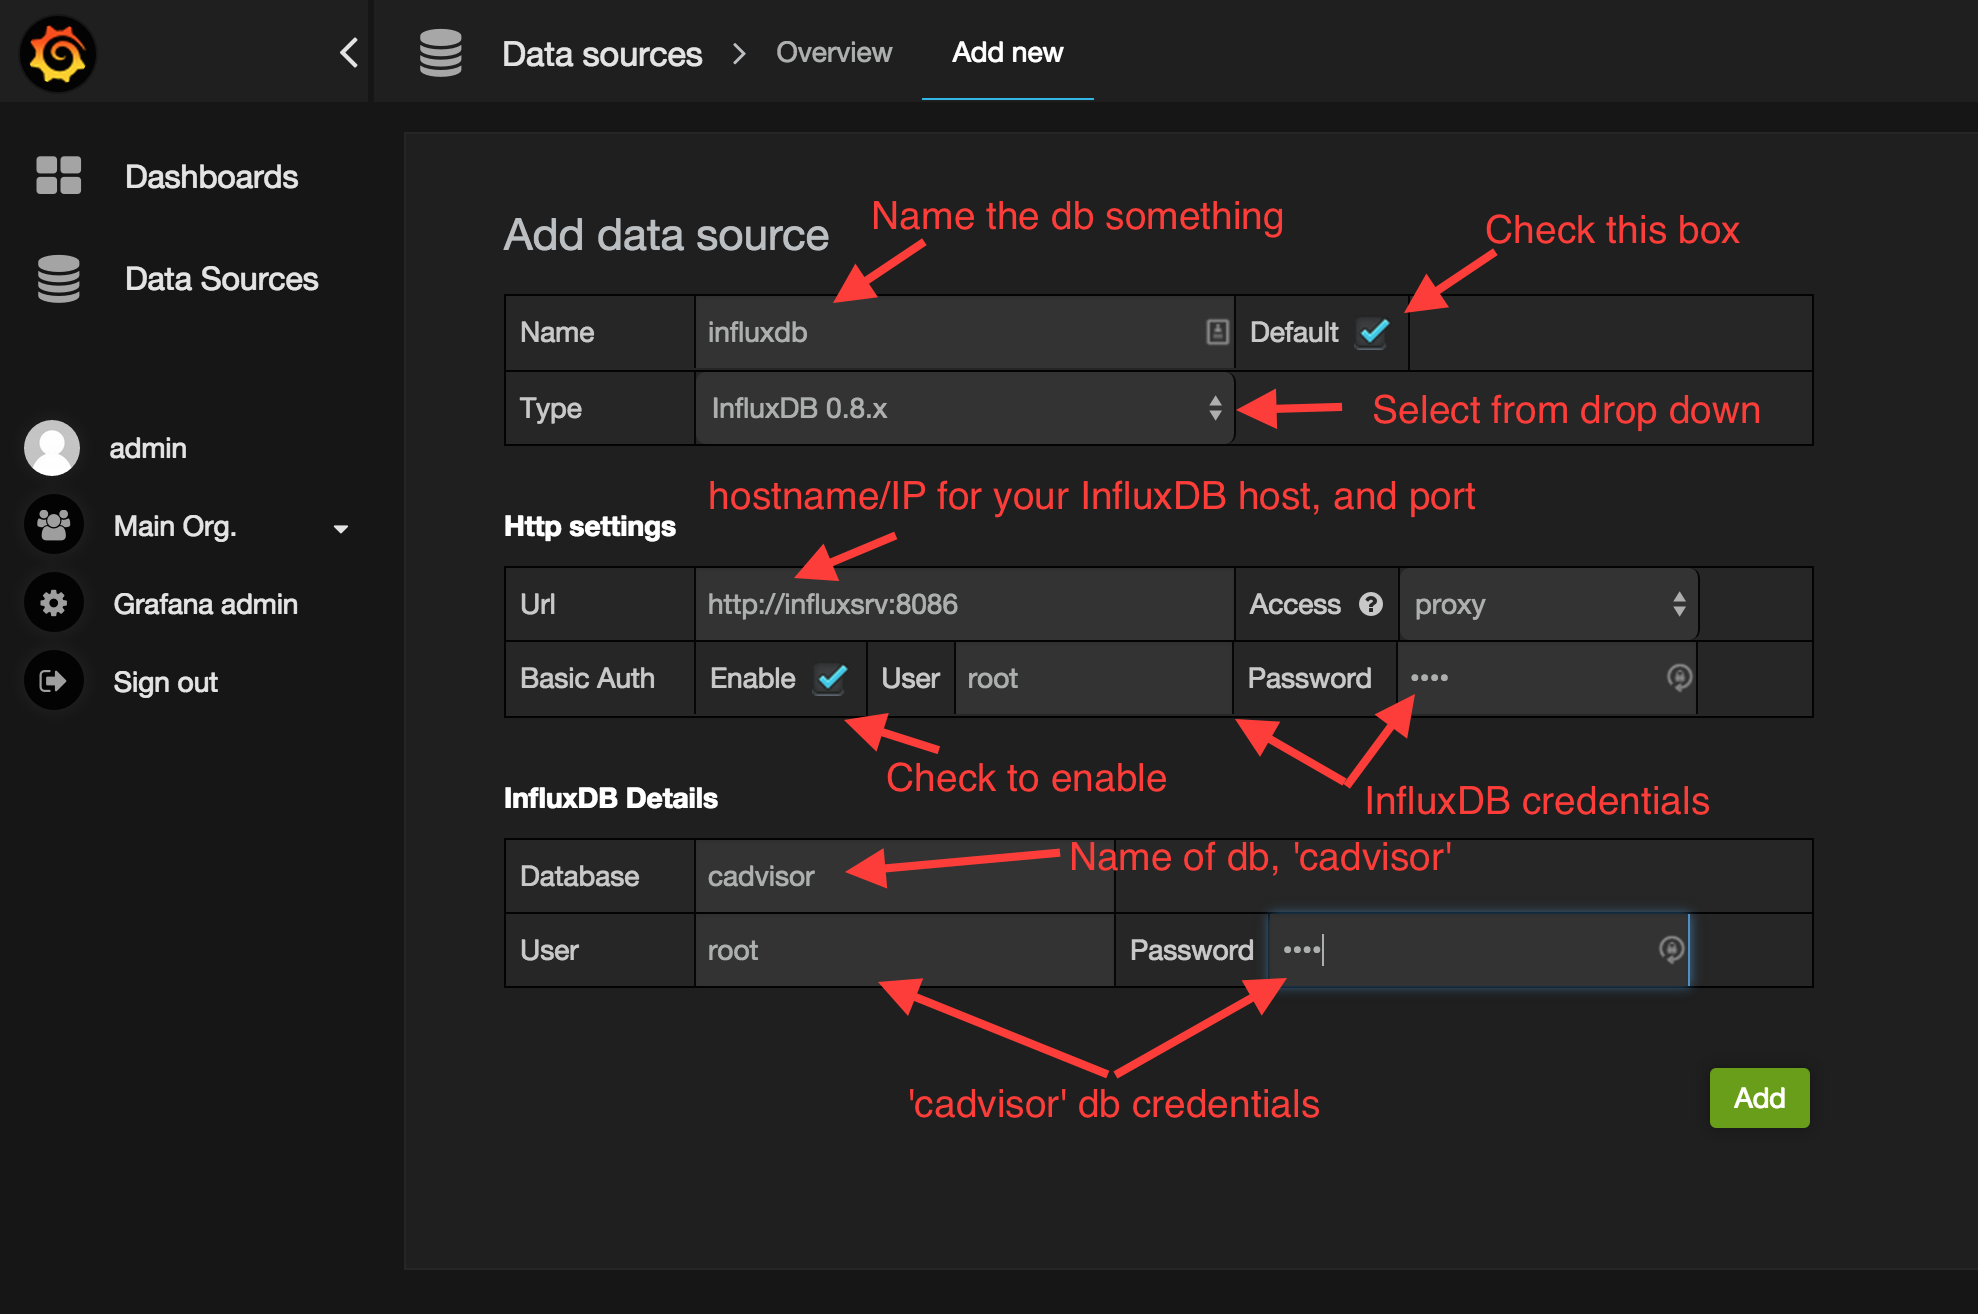 Grafana Creating a Data Source